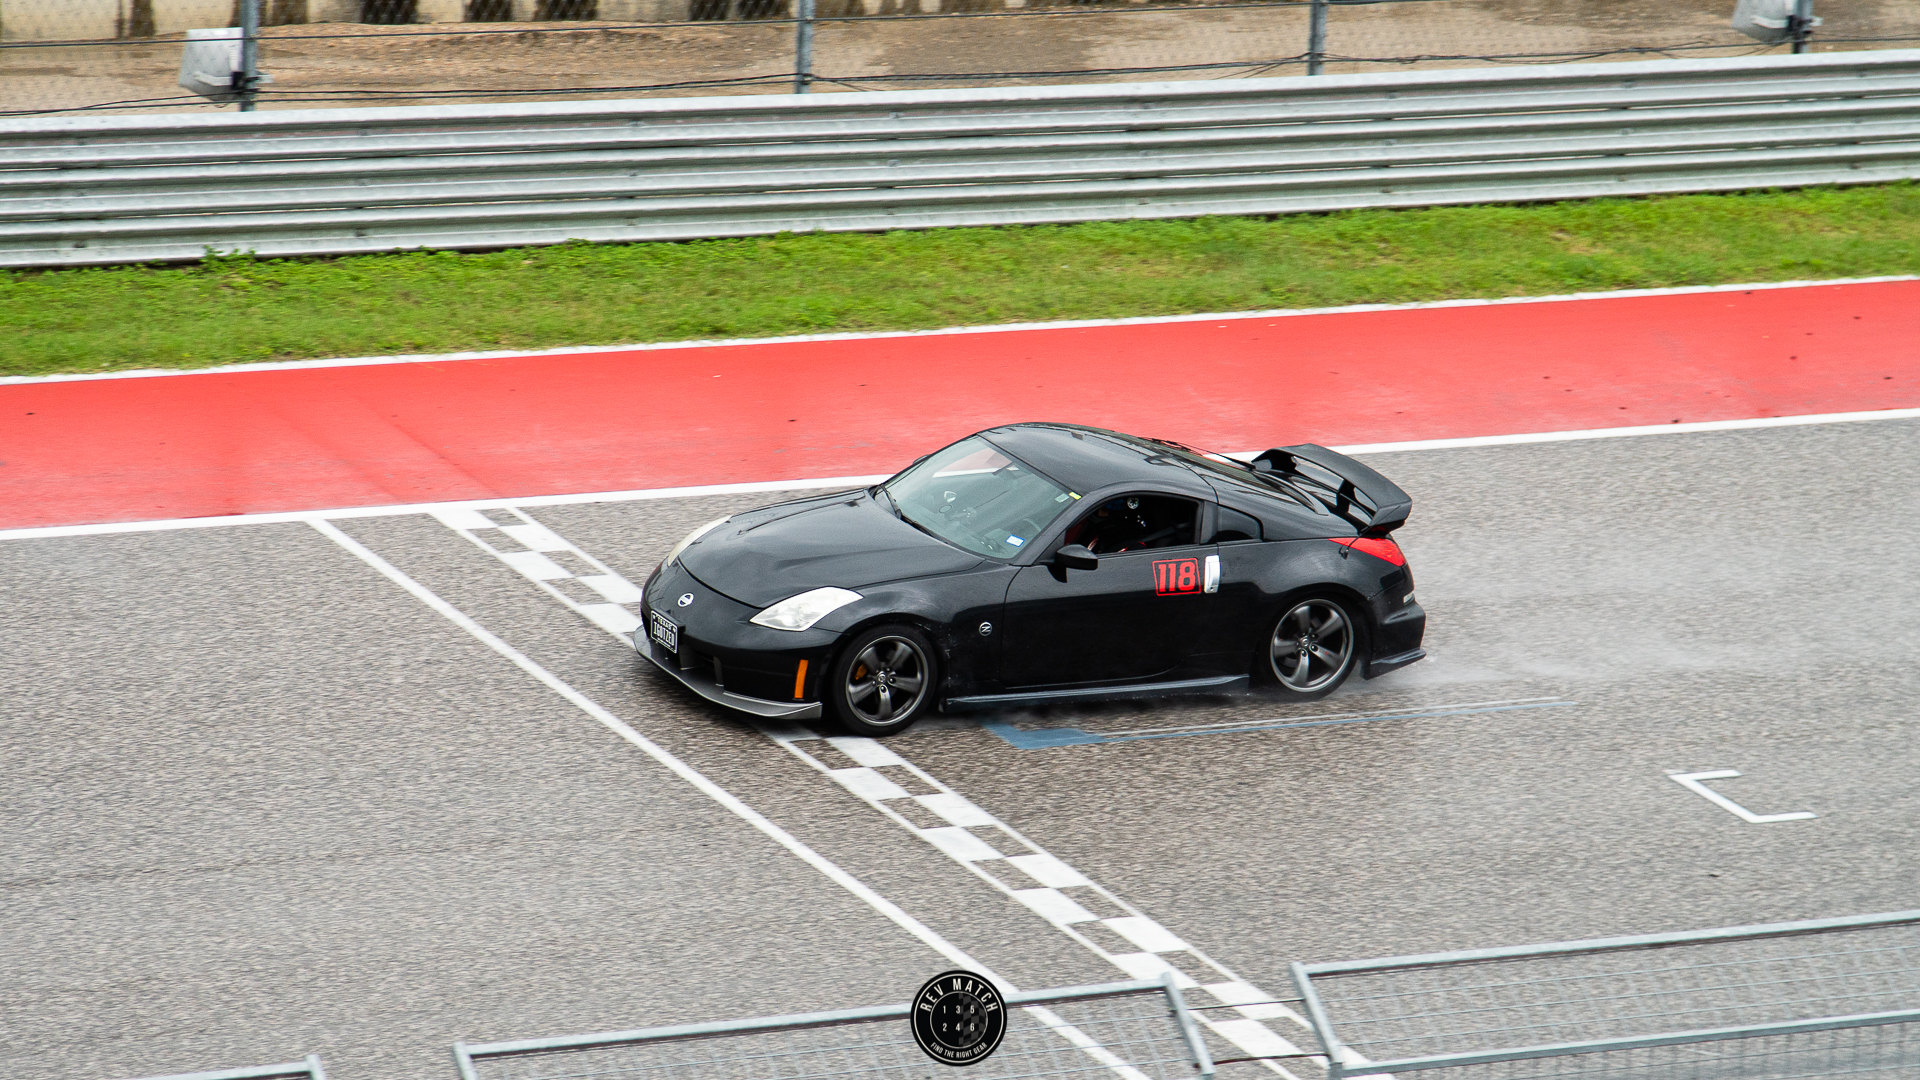 Edge Addict COTA May 2019 Rev Match Media-45.jpg